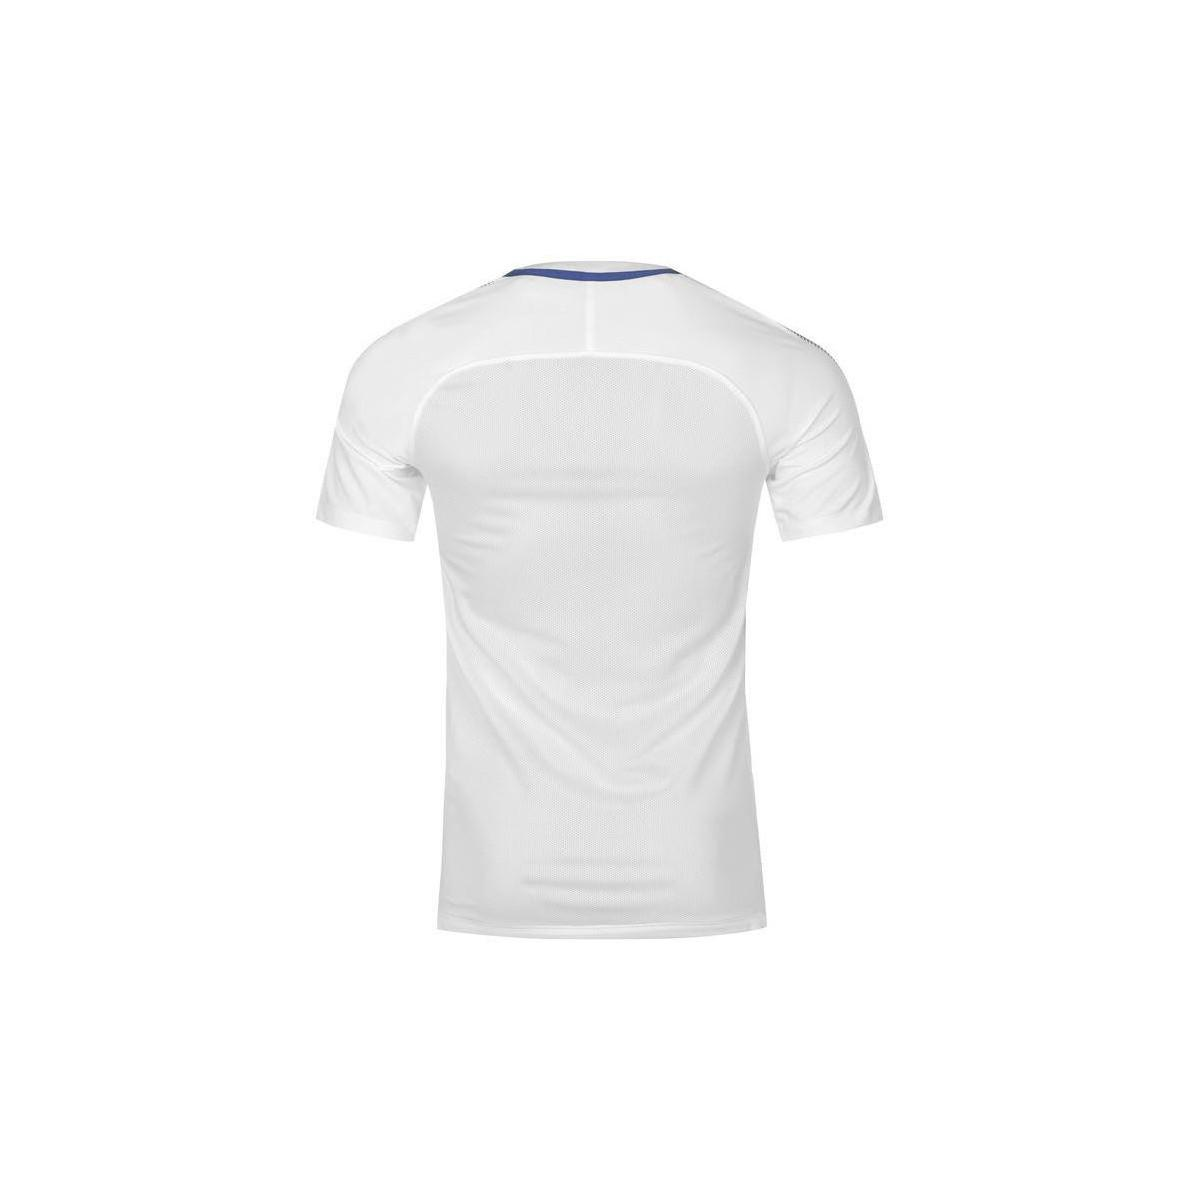 4efea7261be9 nike 2017-2018 chelsea training shirt men s t shirt in white in